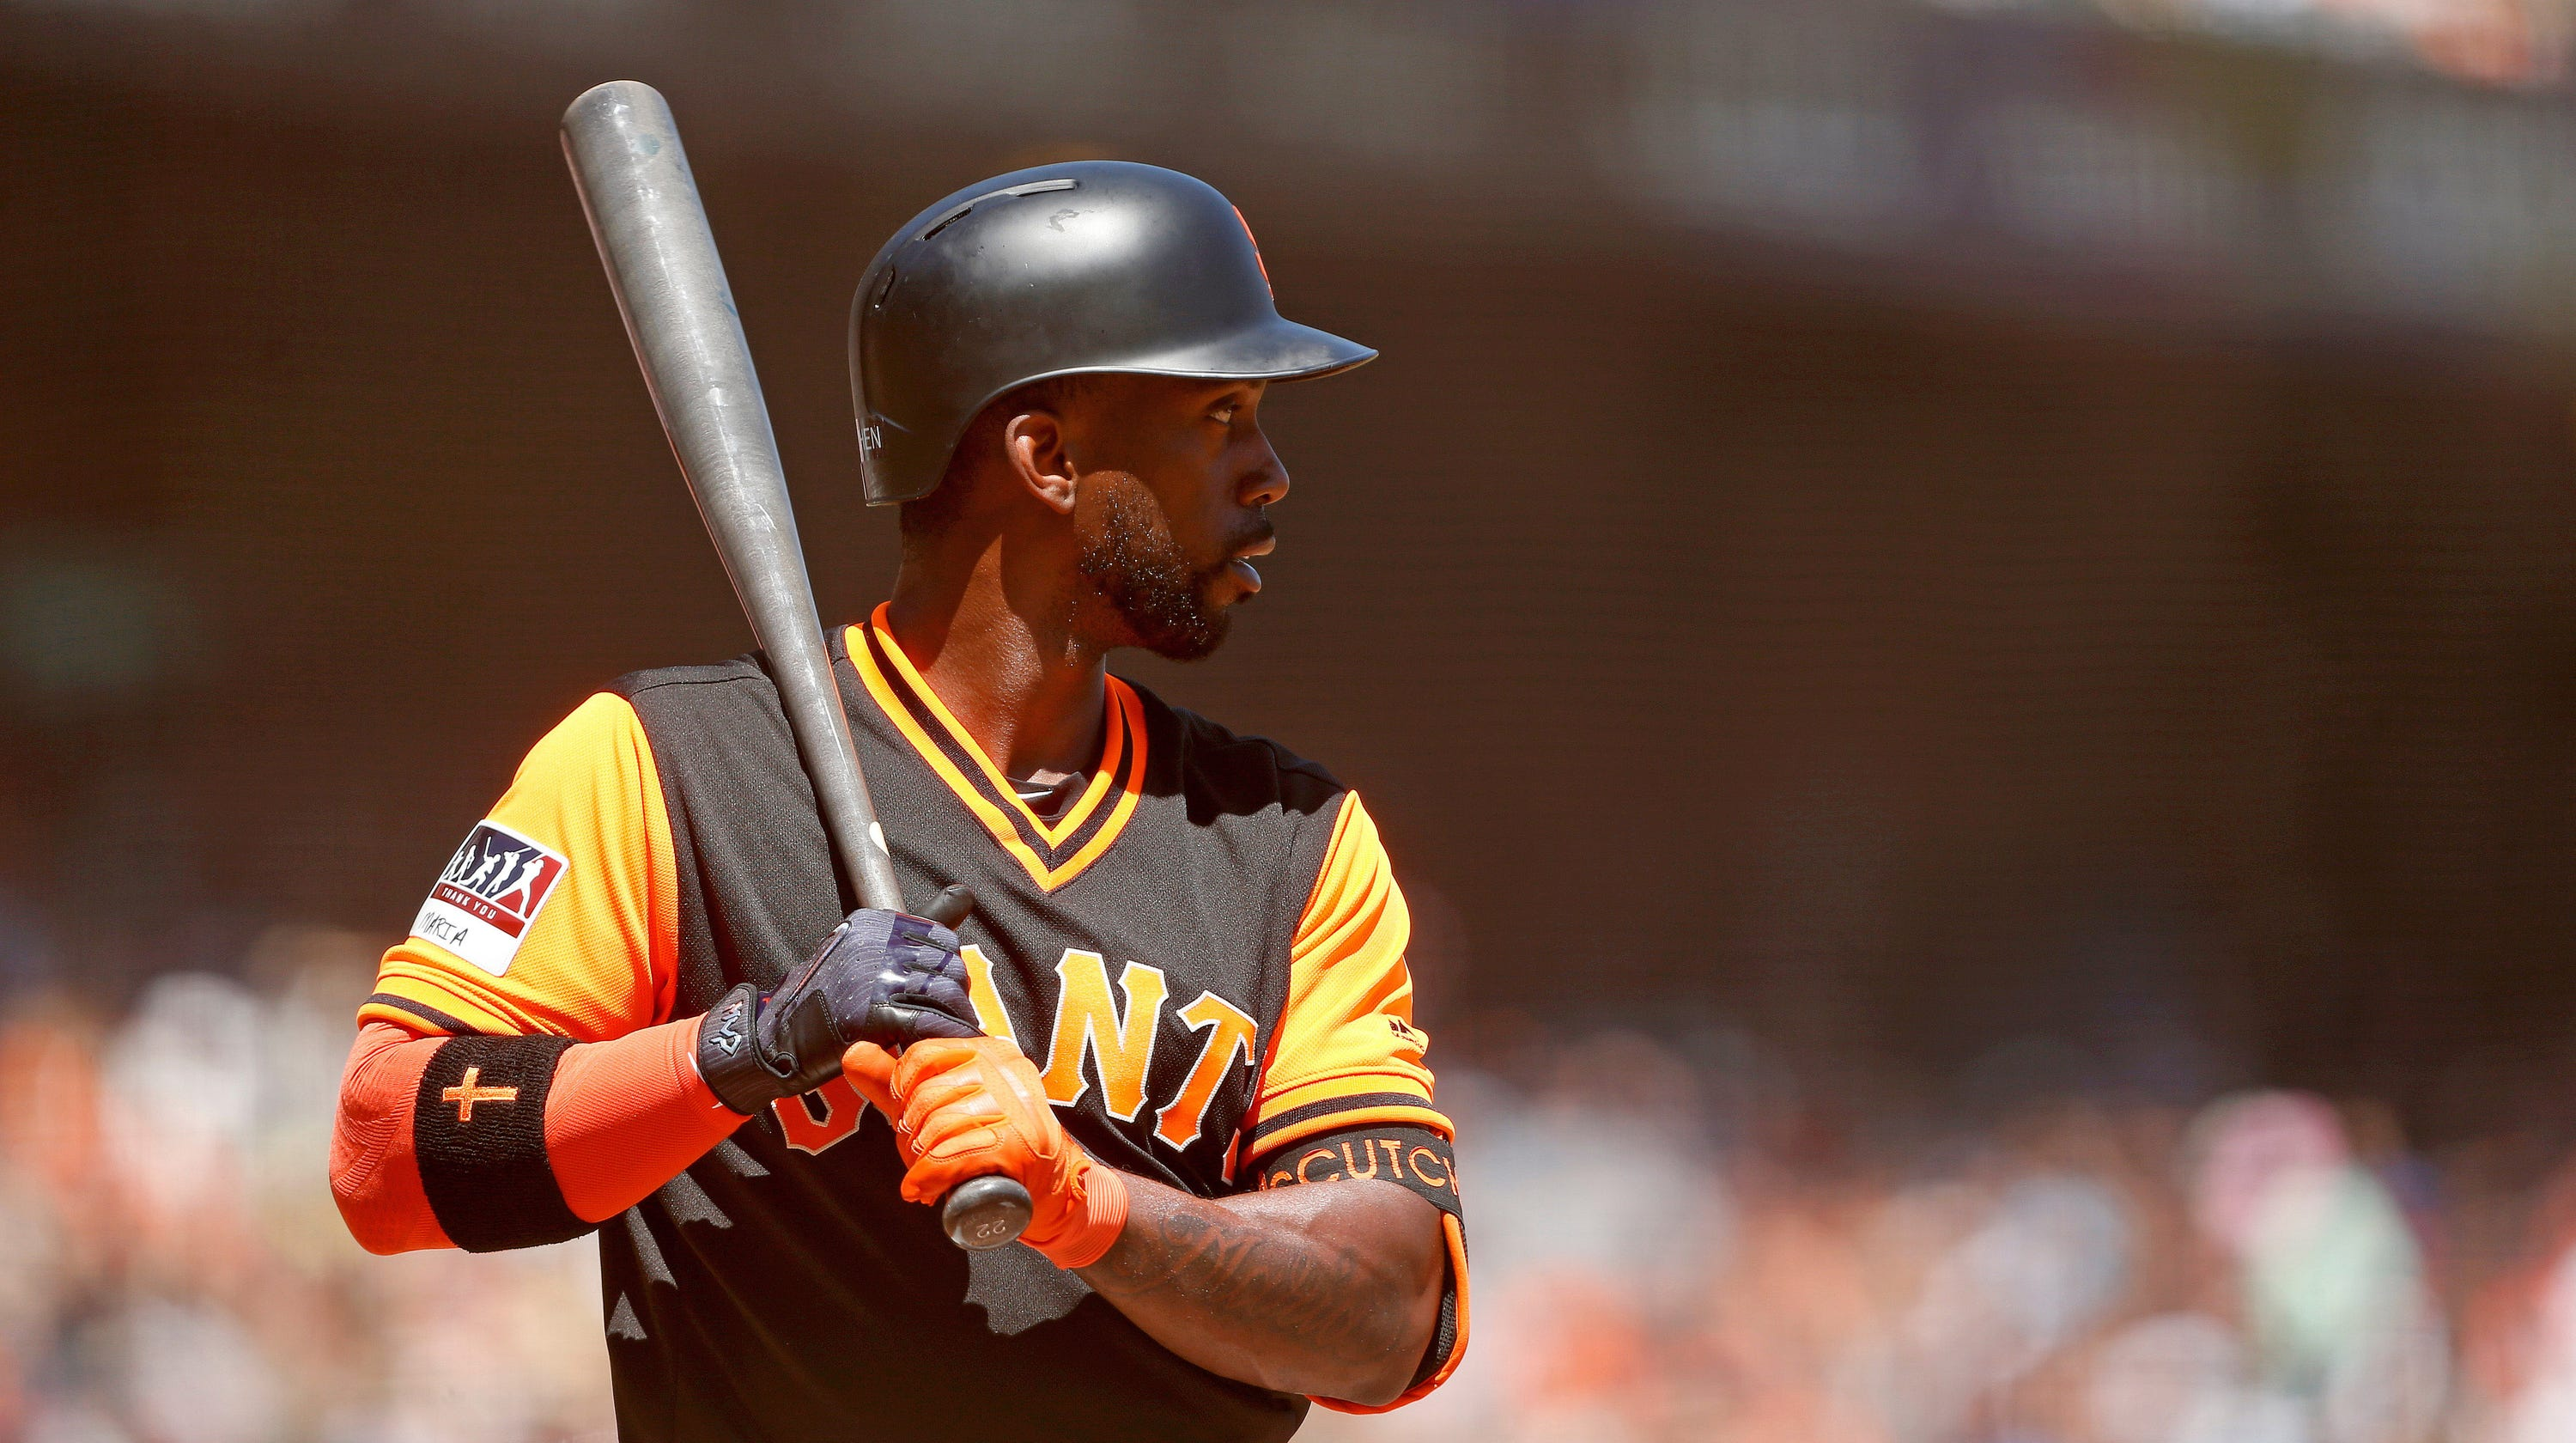 b58cc22fe Andrew McCutchen is officially a Yankee, in exchange for two minor leaguers